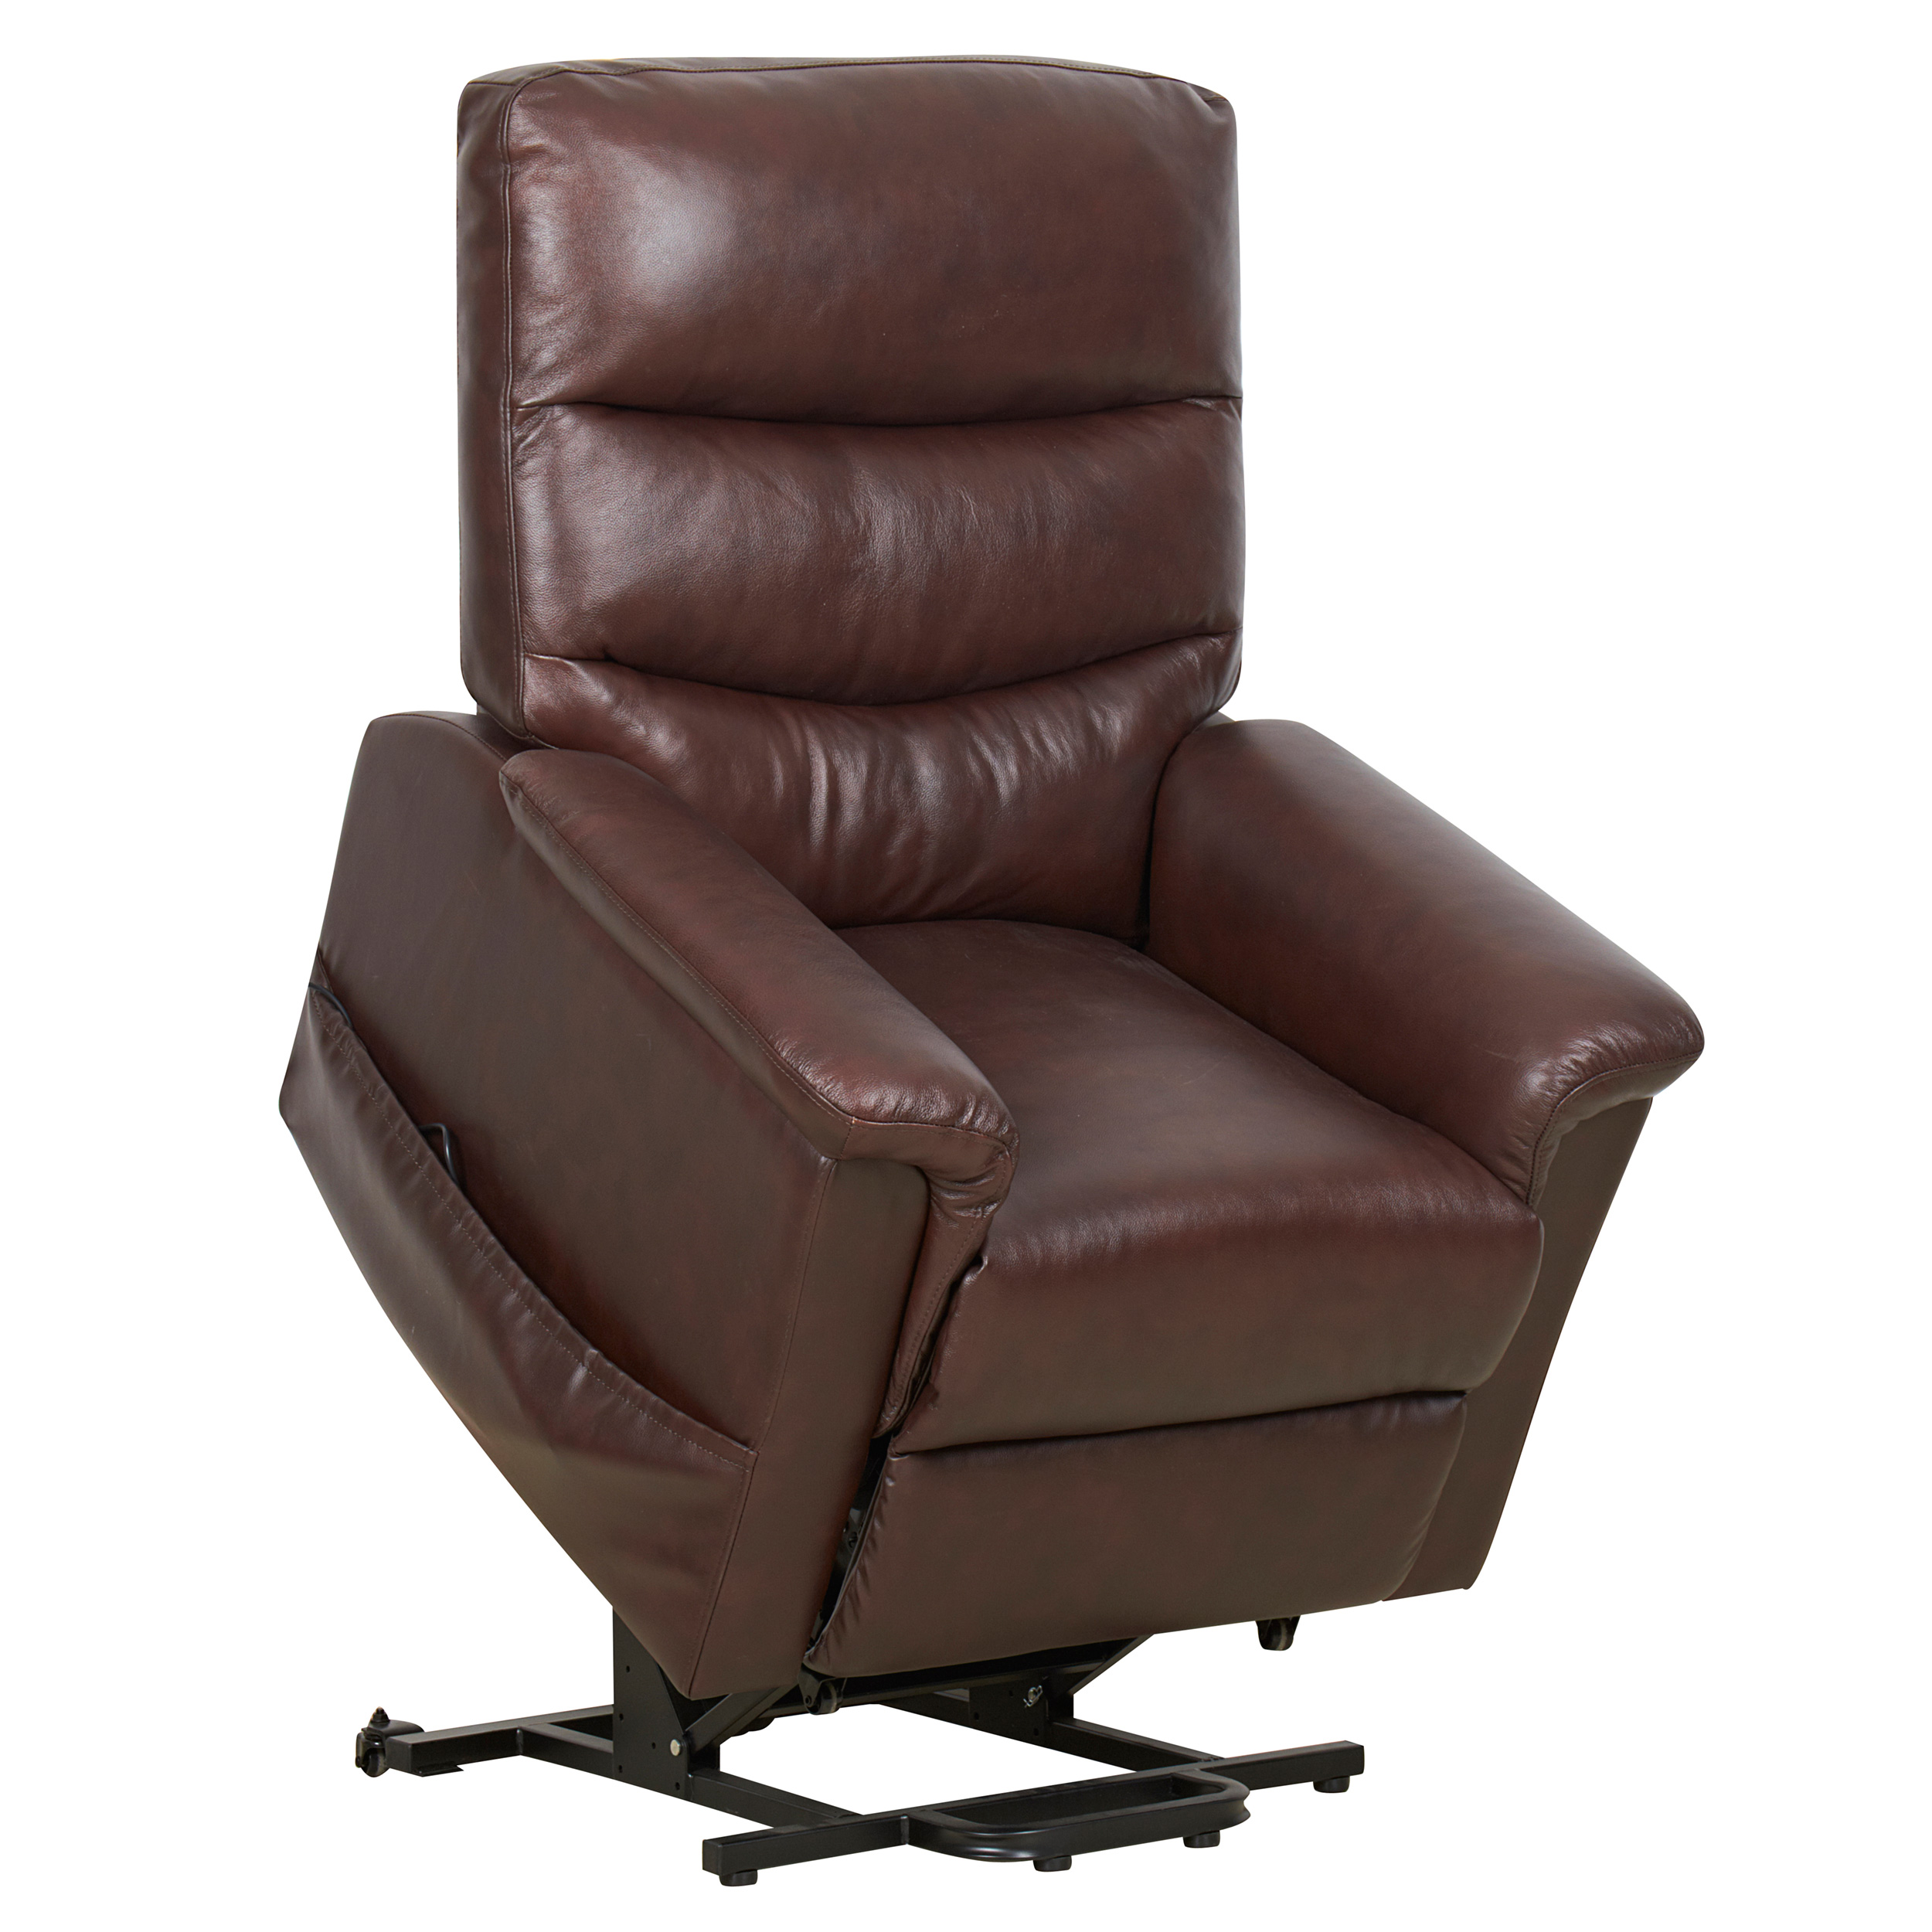 Kenmure Leather Dual Motor Riser Recliner With Heat And Massage EBay